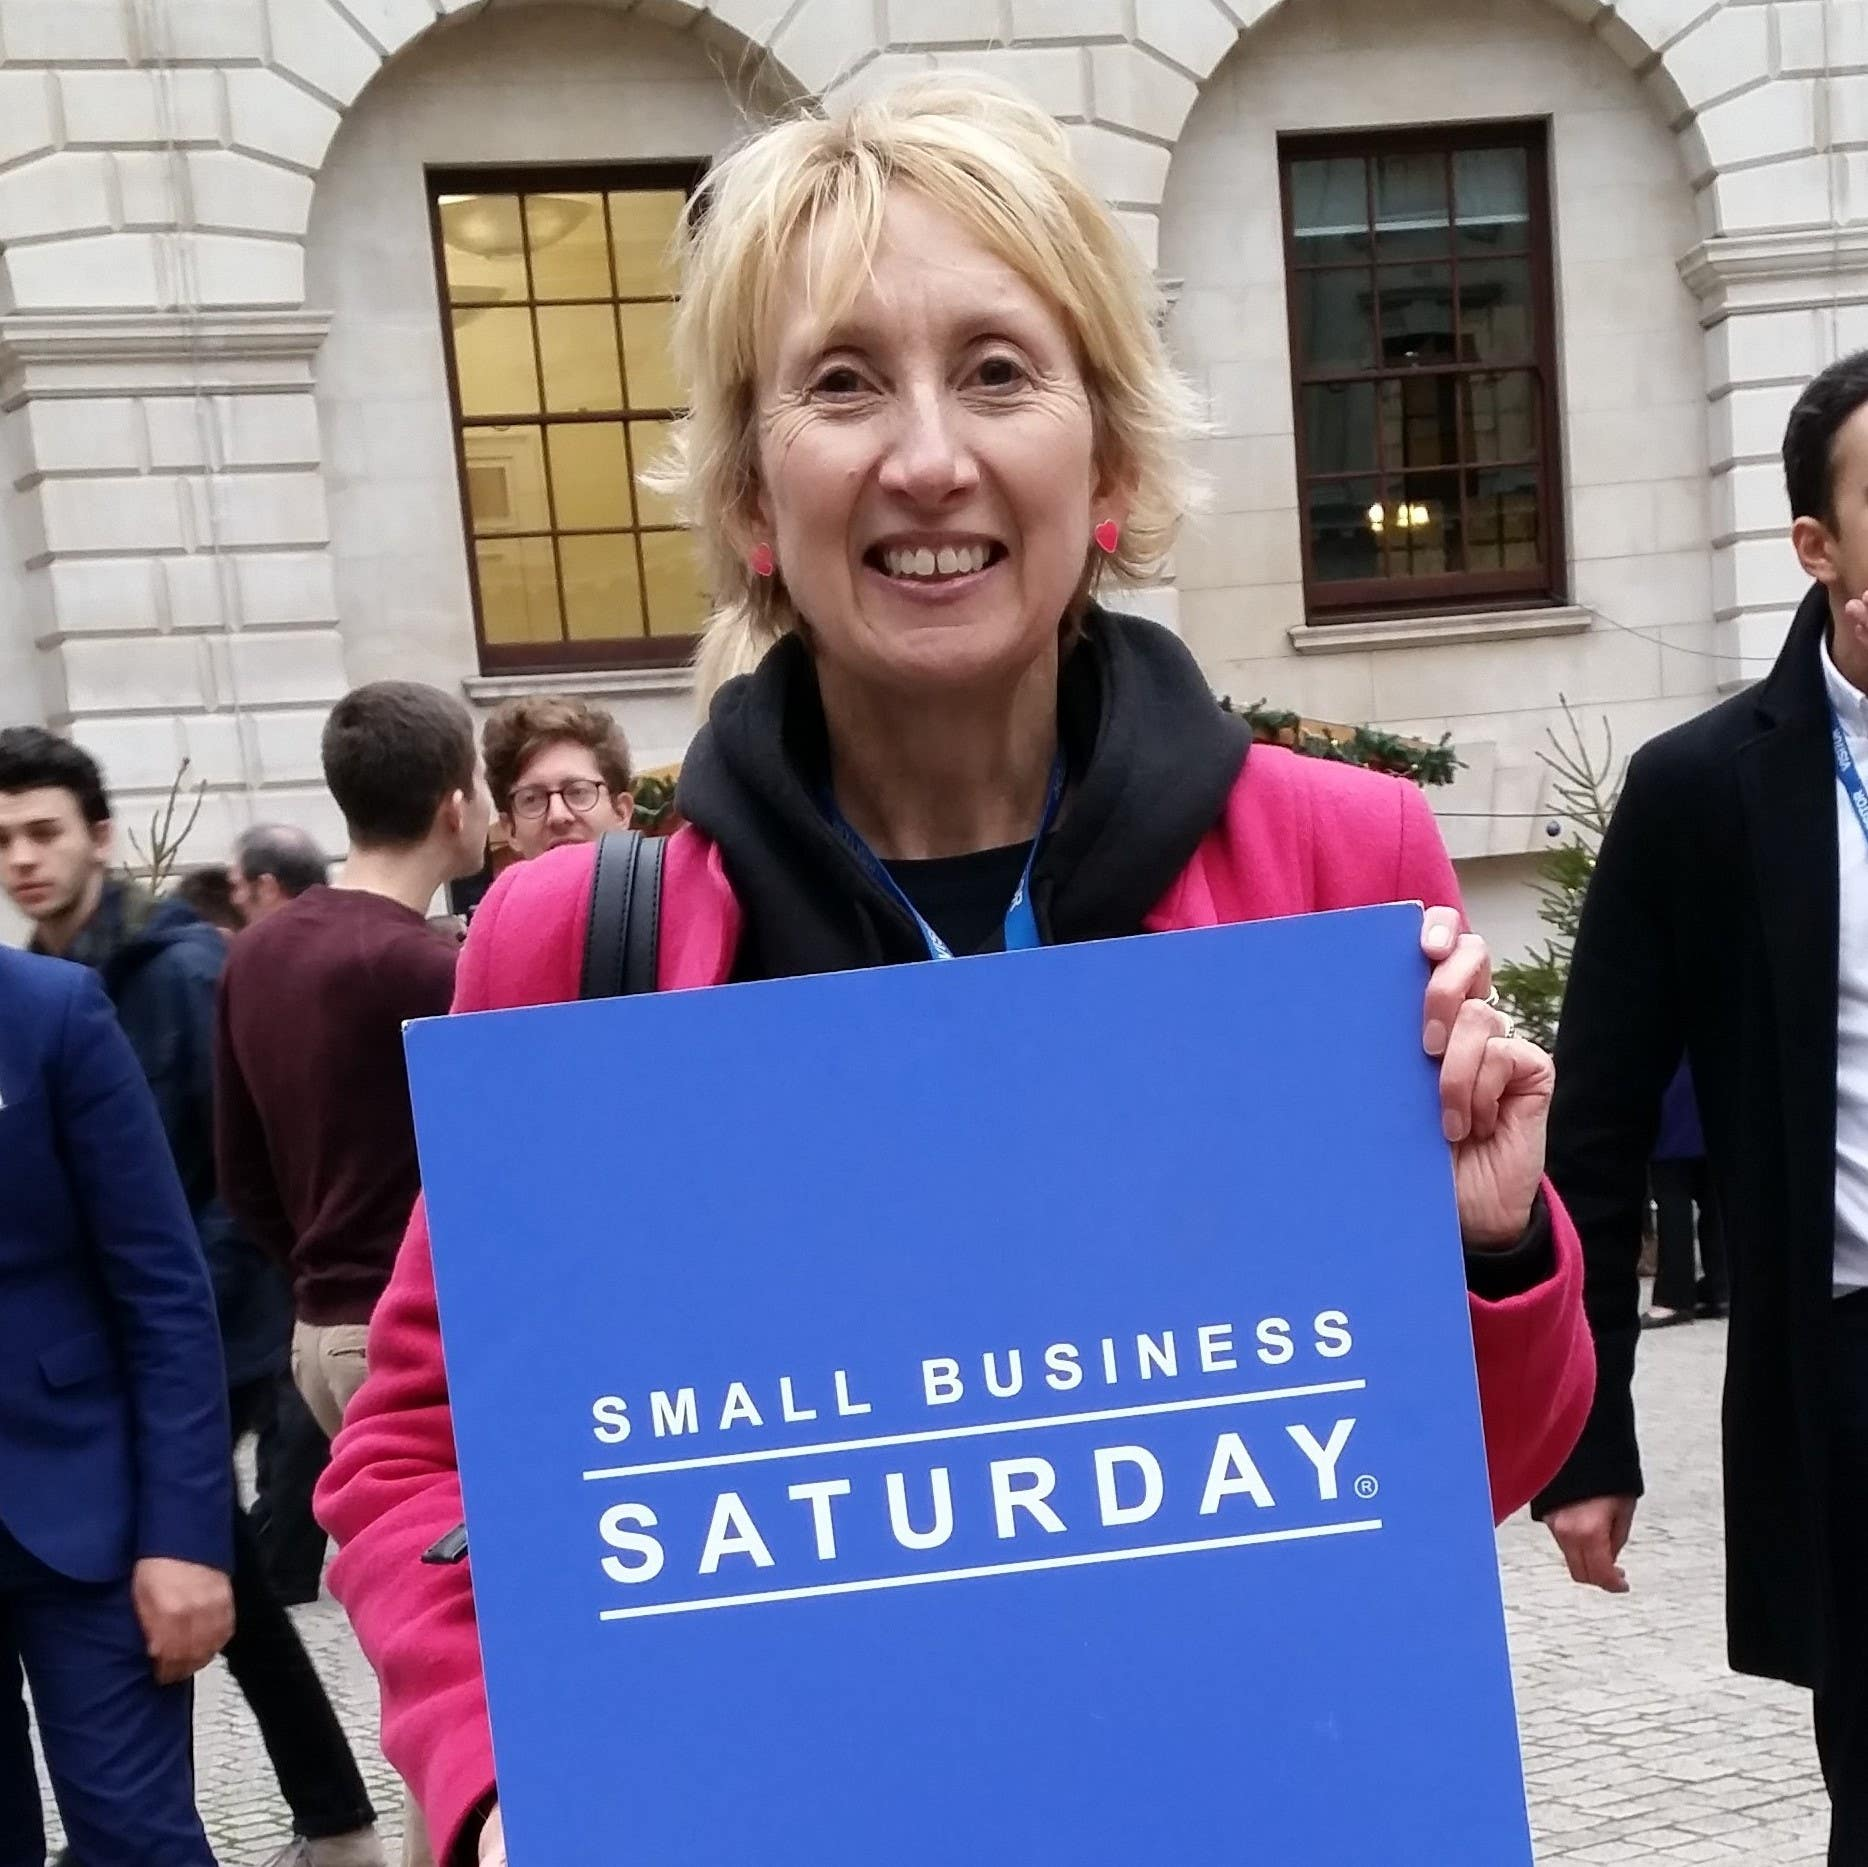 Proud to be chosen as one of Small Business Saturday's 100 and invited to The Treasury!